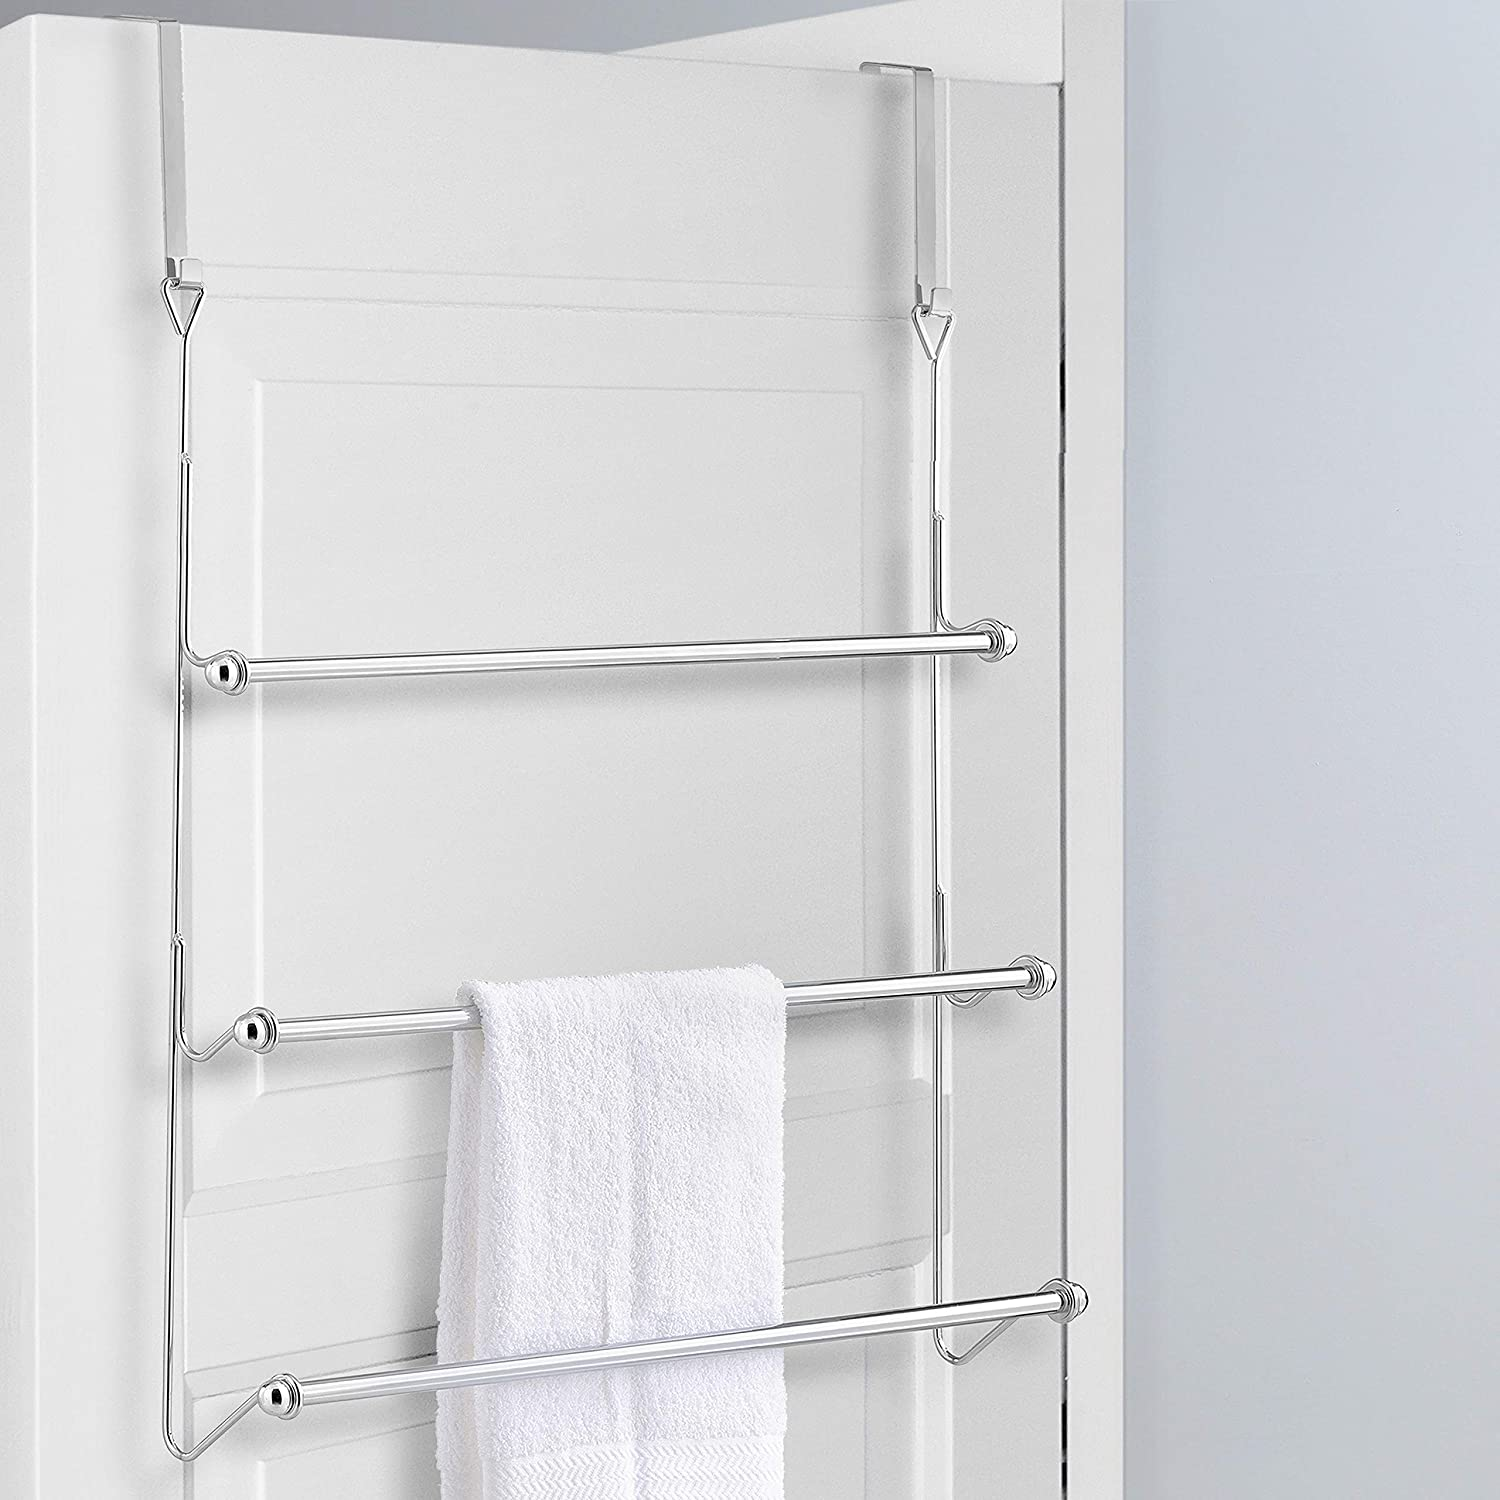 Pleasant Mygift Over The Door 3 Tier Bathroom Towel Bar Rack With Chrome Plated Finish Download Free Architecture Designs Rallybritishbridgeorg